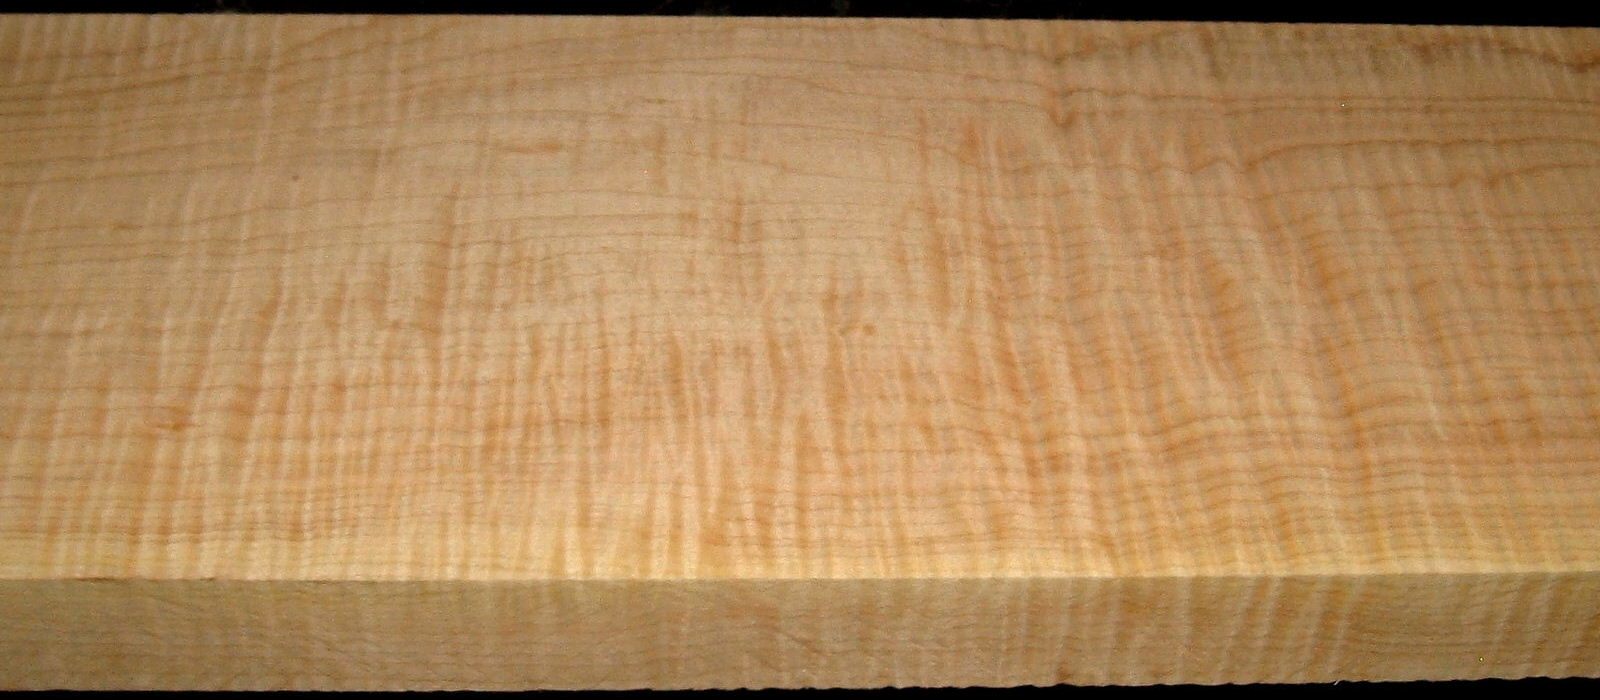 QS2001-7, 1-7/16x6-3/8x40, Quartersawn Curly Maple